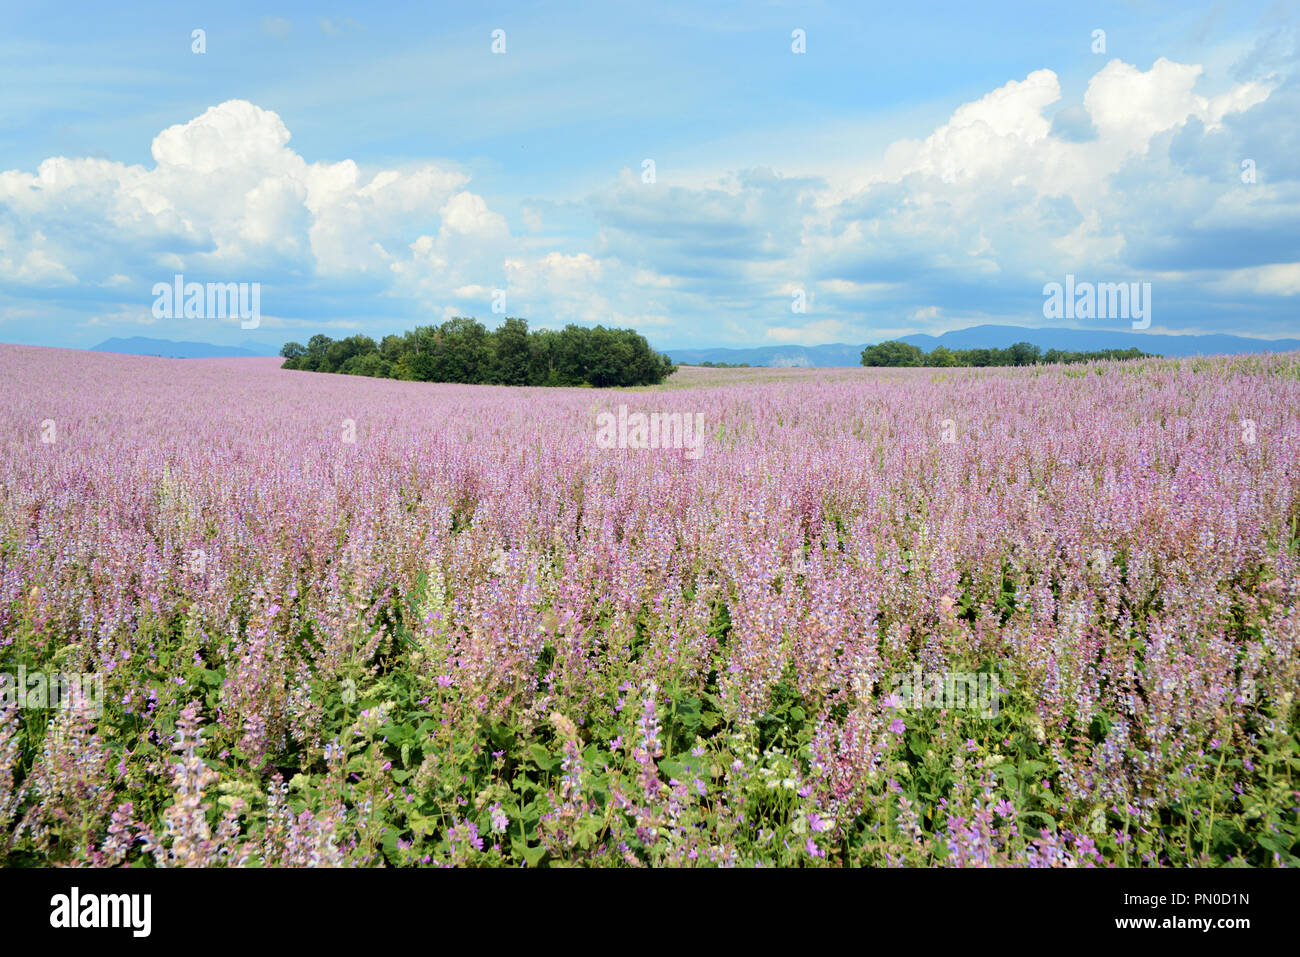 Field of Commercial Sage or Clary Sage, Salvia sclarea, on the Valensole Plateau Provence France - Stock Image